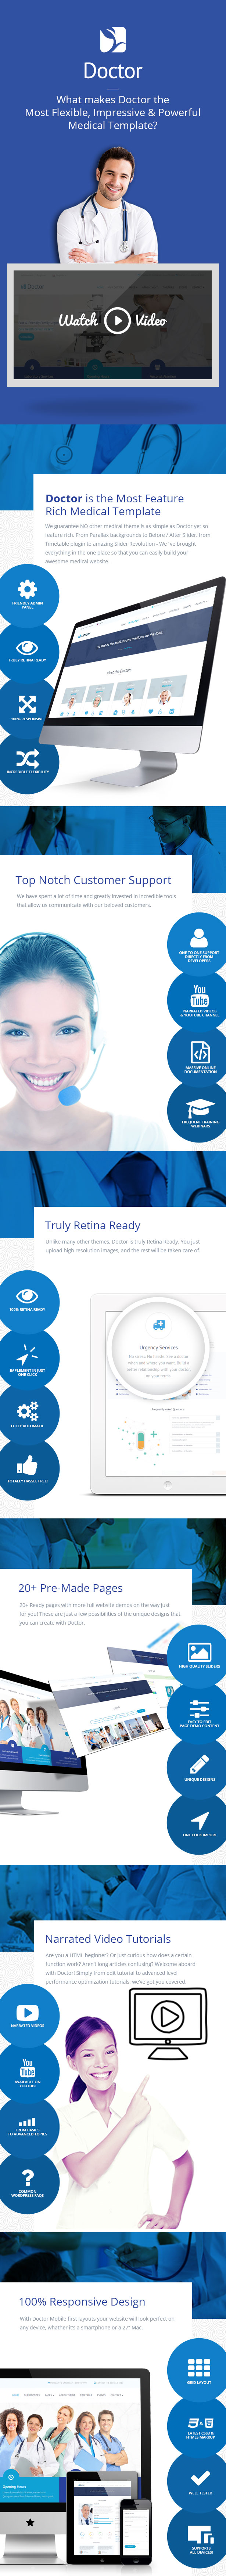 Doctor - Health Clinical Template by mustachethemes | ThemeForest